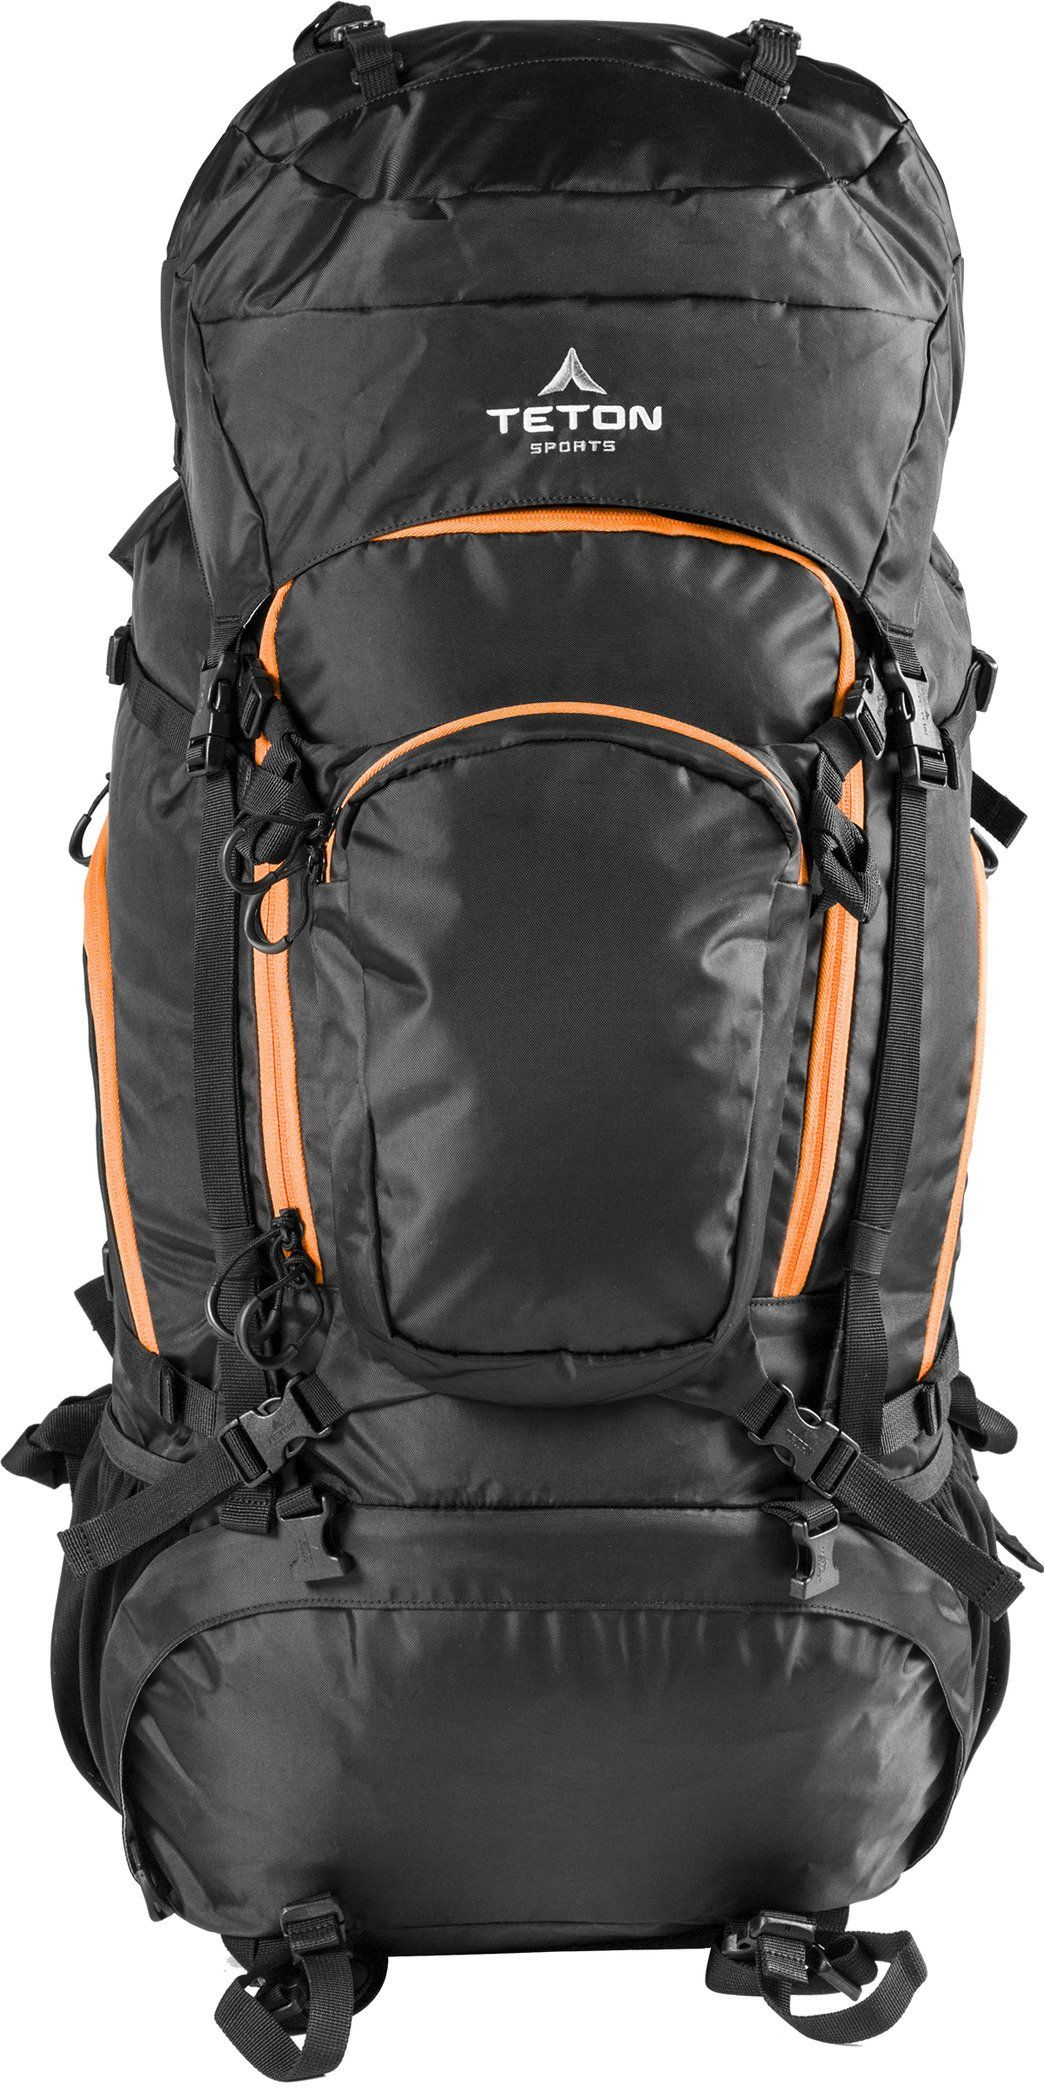 TETON Sports Grand 5500 Backpack  Ultralight Backpacking Gear  Hiking  Backpack for Camping b0c42c4bde278